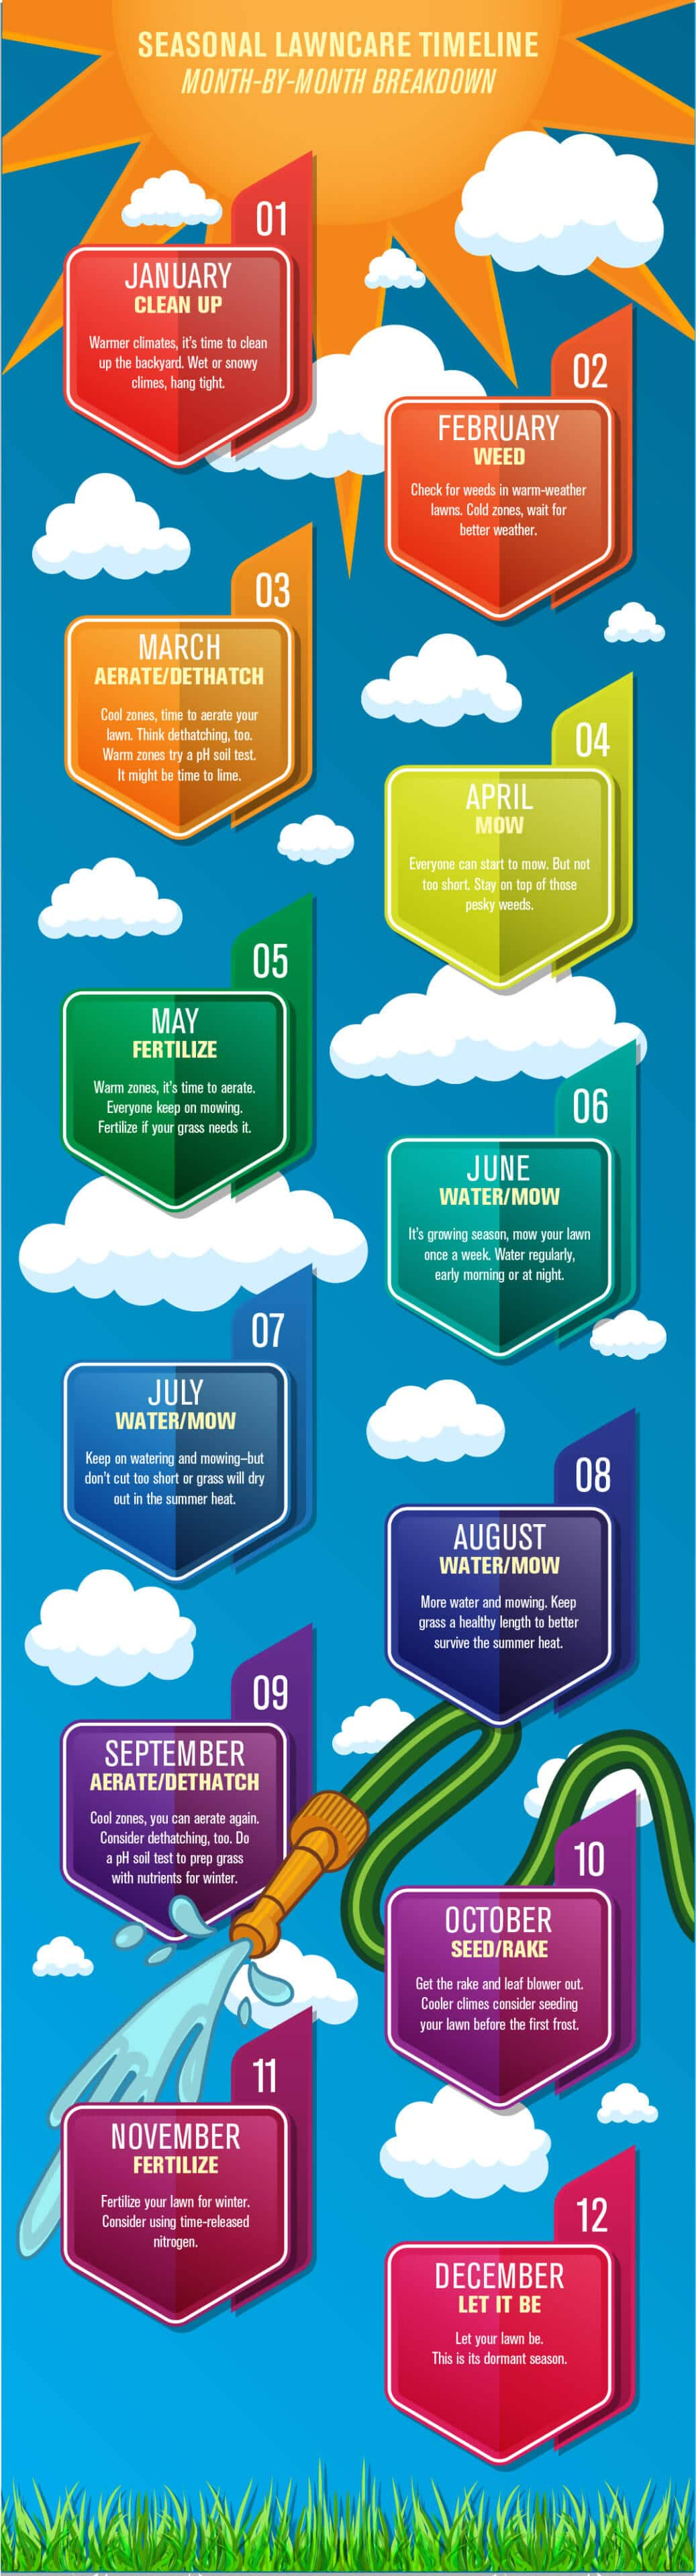 Month by Month Lawn Care Infographic